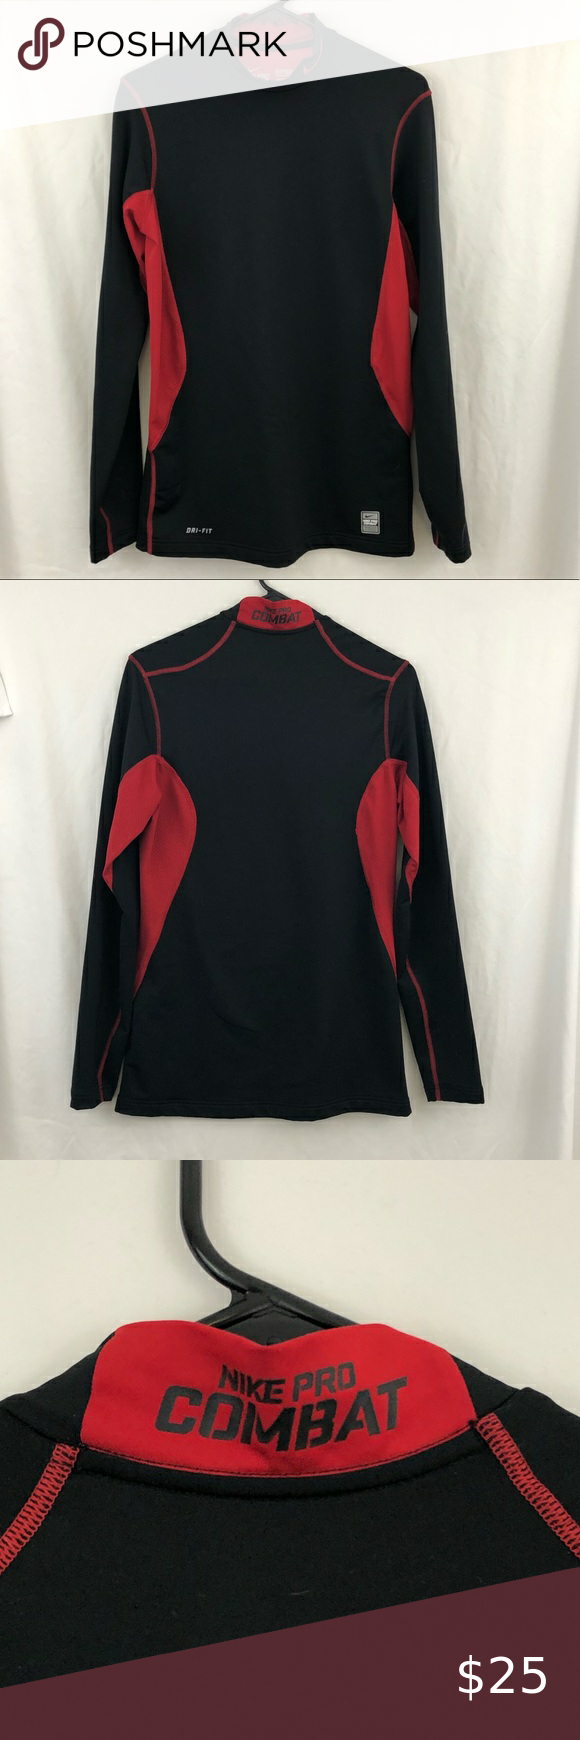 Nike Pro Combat Hyperwarm Dry Fit Black Red Shirt Nike Pro Combat Hyperwarm Dry Fit Black Red 1 4 Zip Sz M Sh Red And Black Shirt Nike Pro Combat Black And Red [ 1740 x 580 Pixel ]